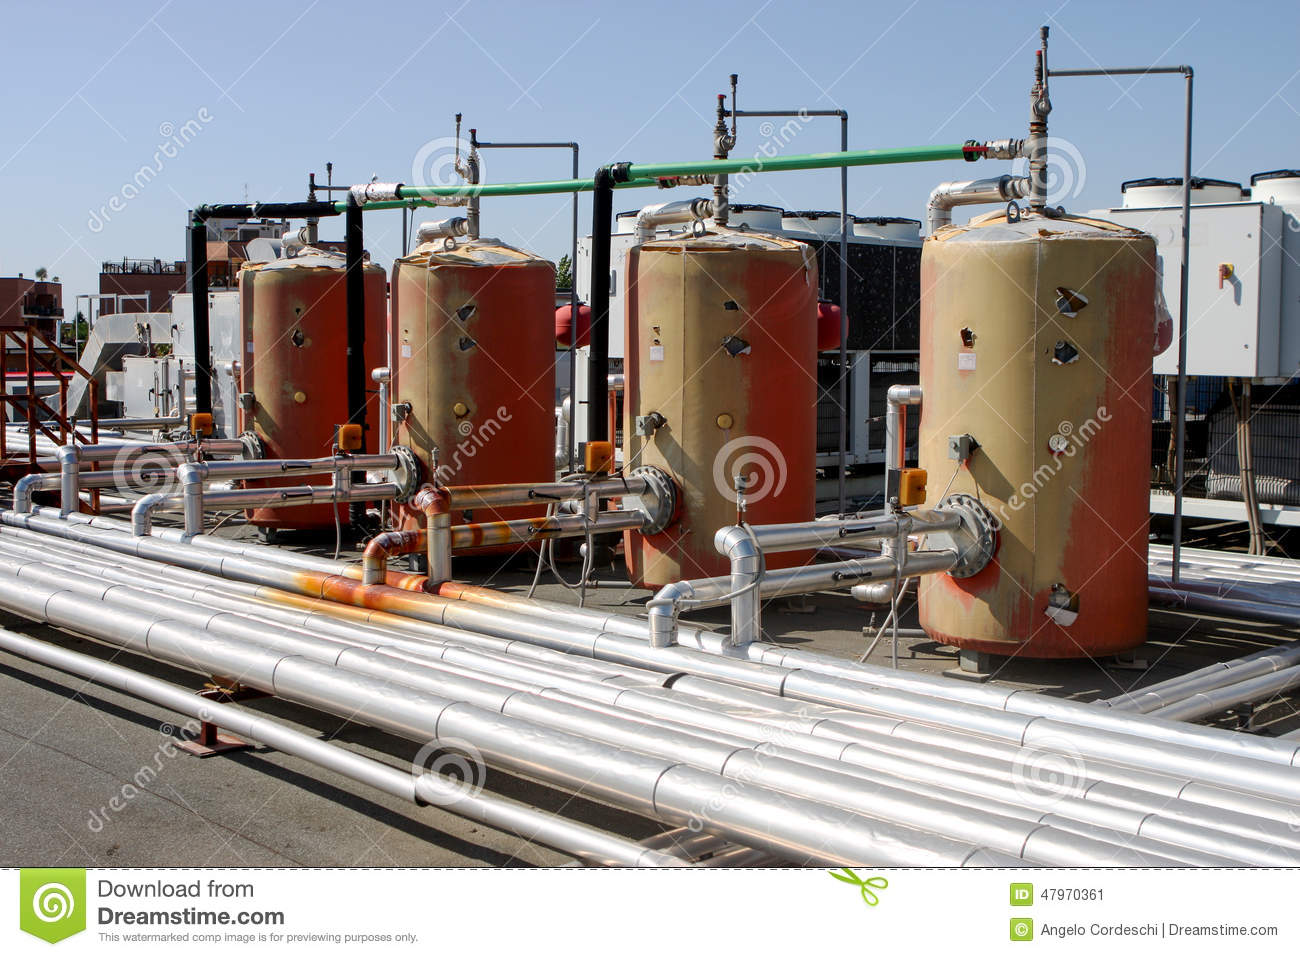 Industrial Thermal Plant Heating System Boiler Stock Image - Image ...